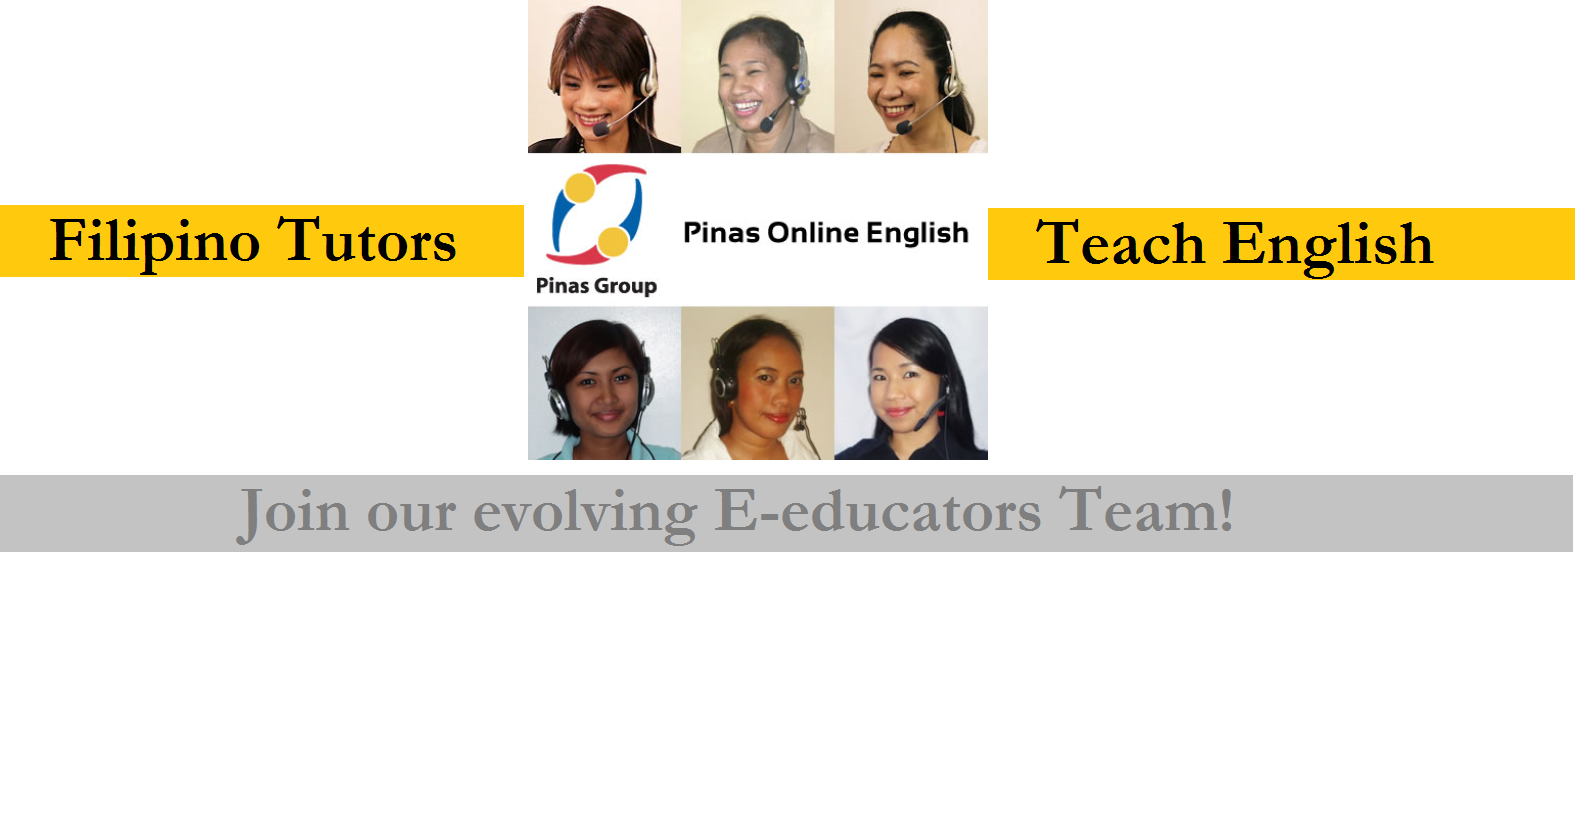 Join our E-educators evolving TEAM! Home based online teaching